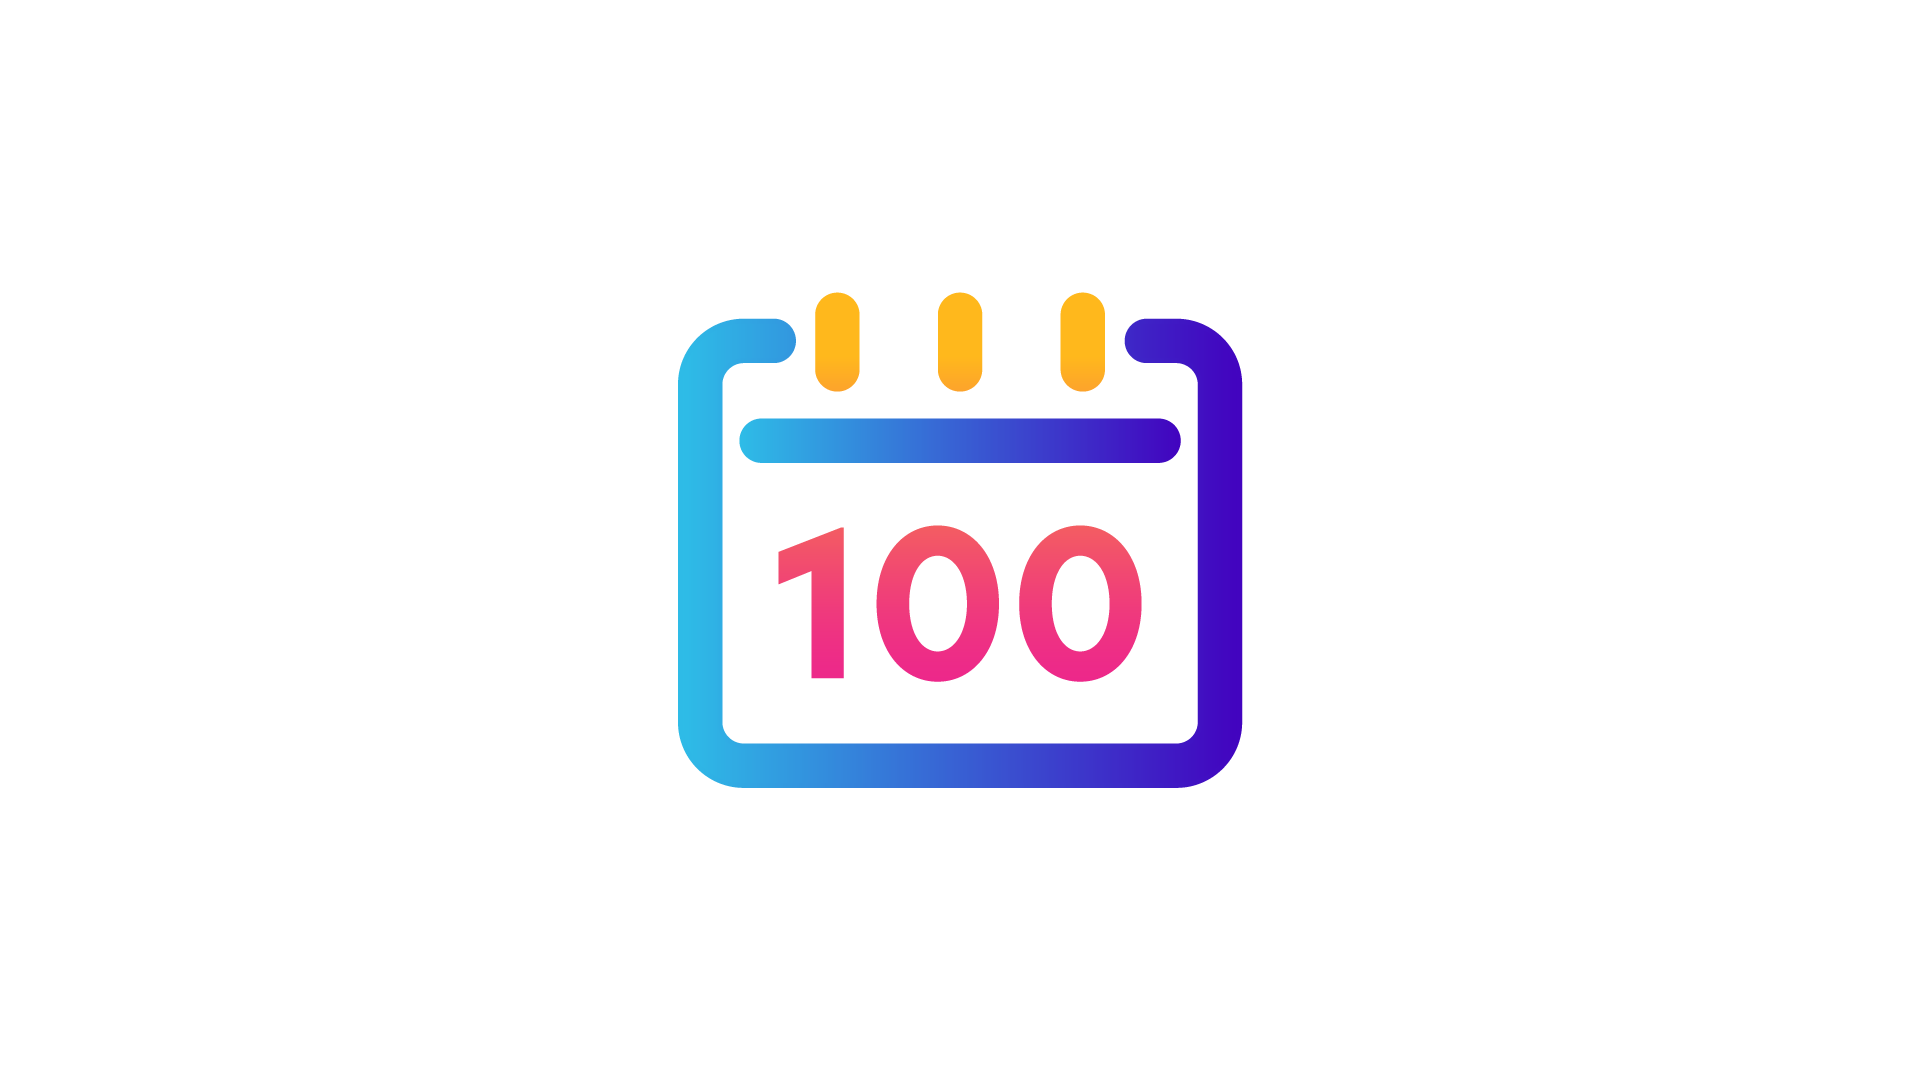 calendar icon with '100' written in the middle